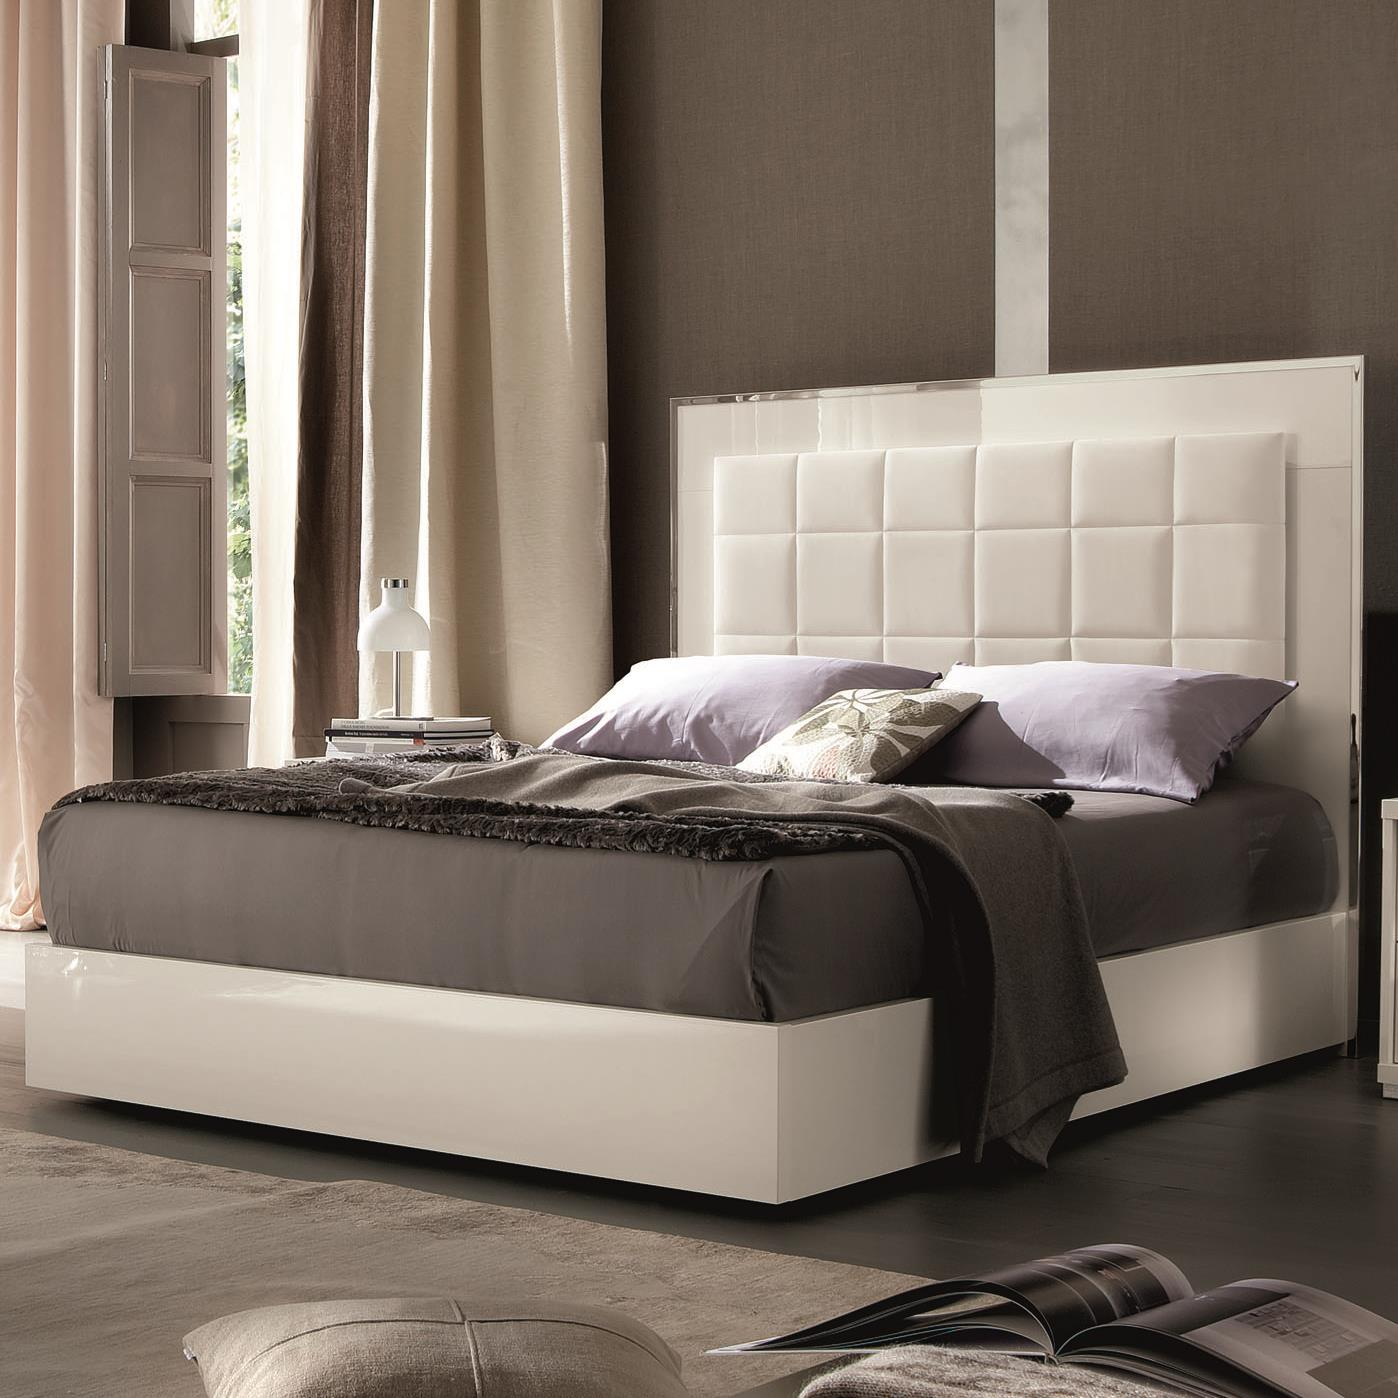 Imperia King Upholstered Bed w/ Storage Footboard by Alf Italia at Stoney Creek Furniture